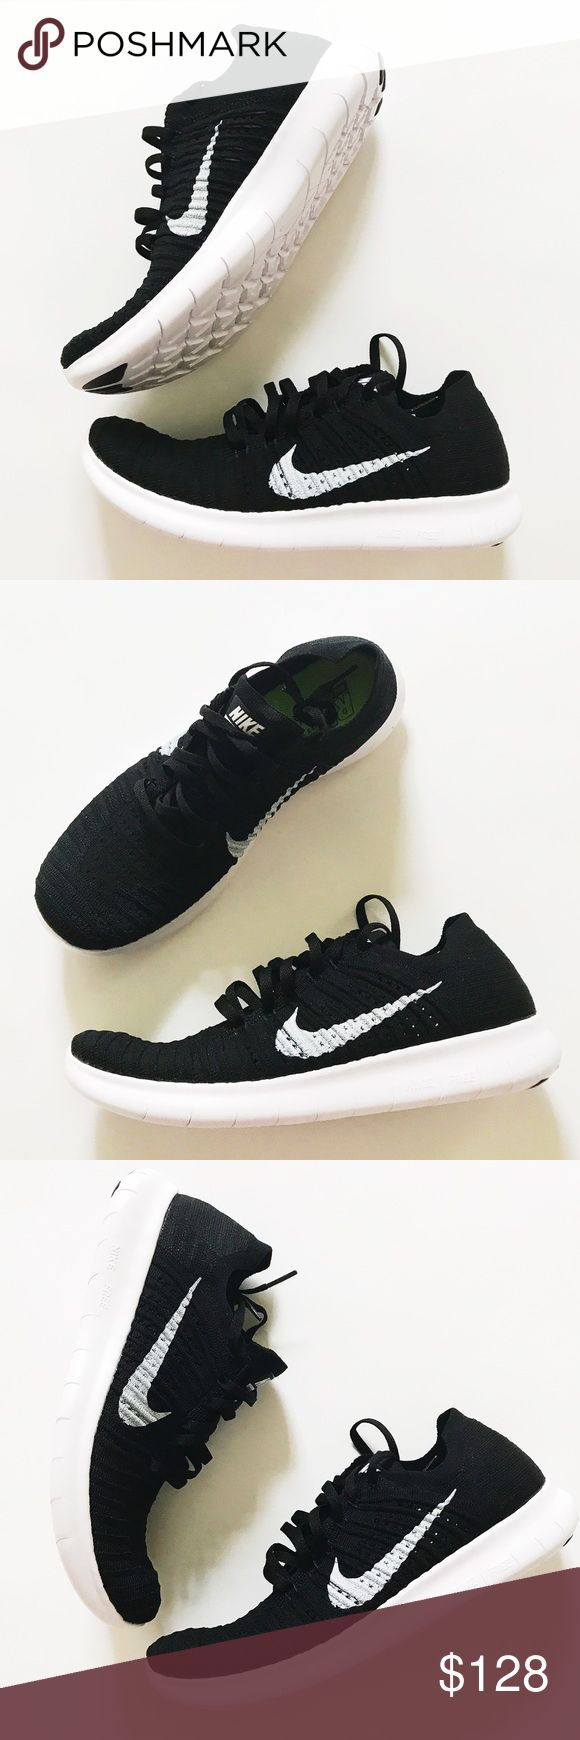 Nike free flyknit running shoes Brand new with box. These are light weight,  super comfortable, have flexible support and soc like upper. True to size.